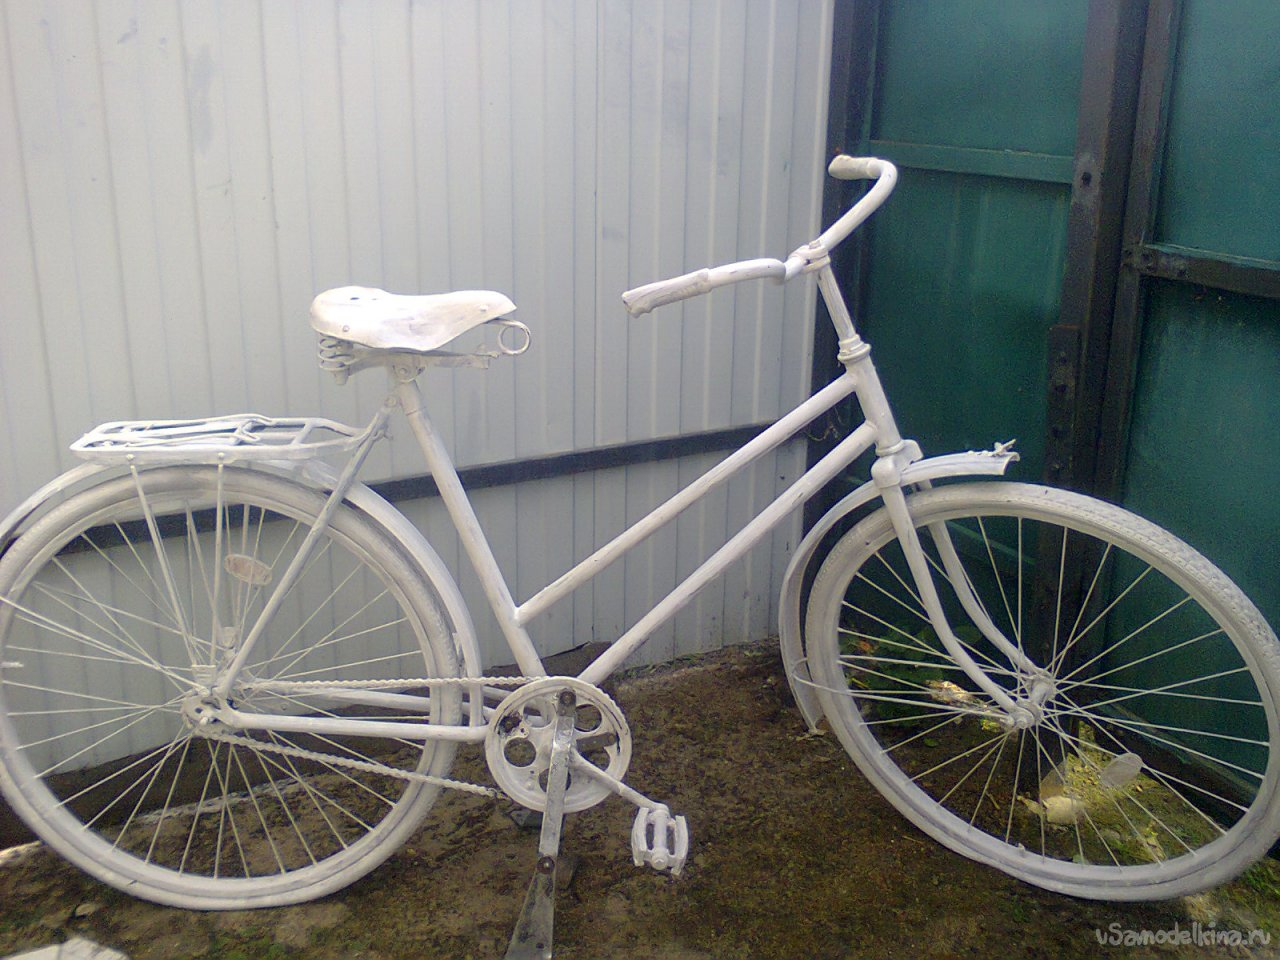 The second life of the old bike